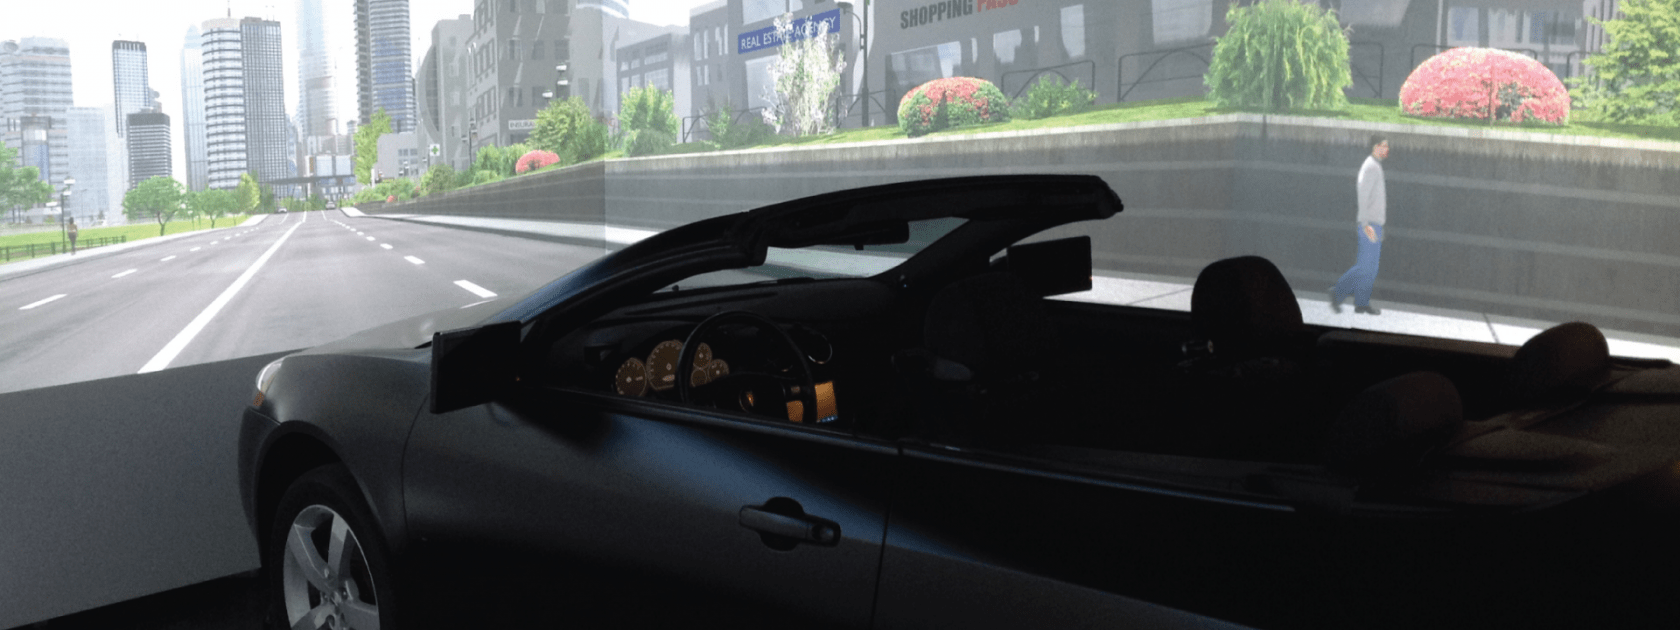 Drive Lab Car and Screen